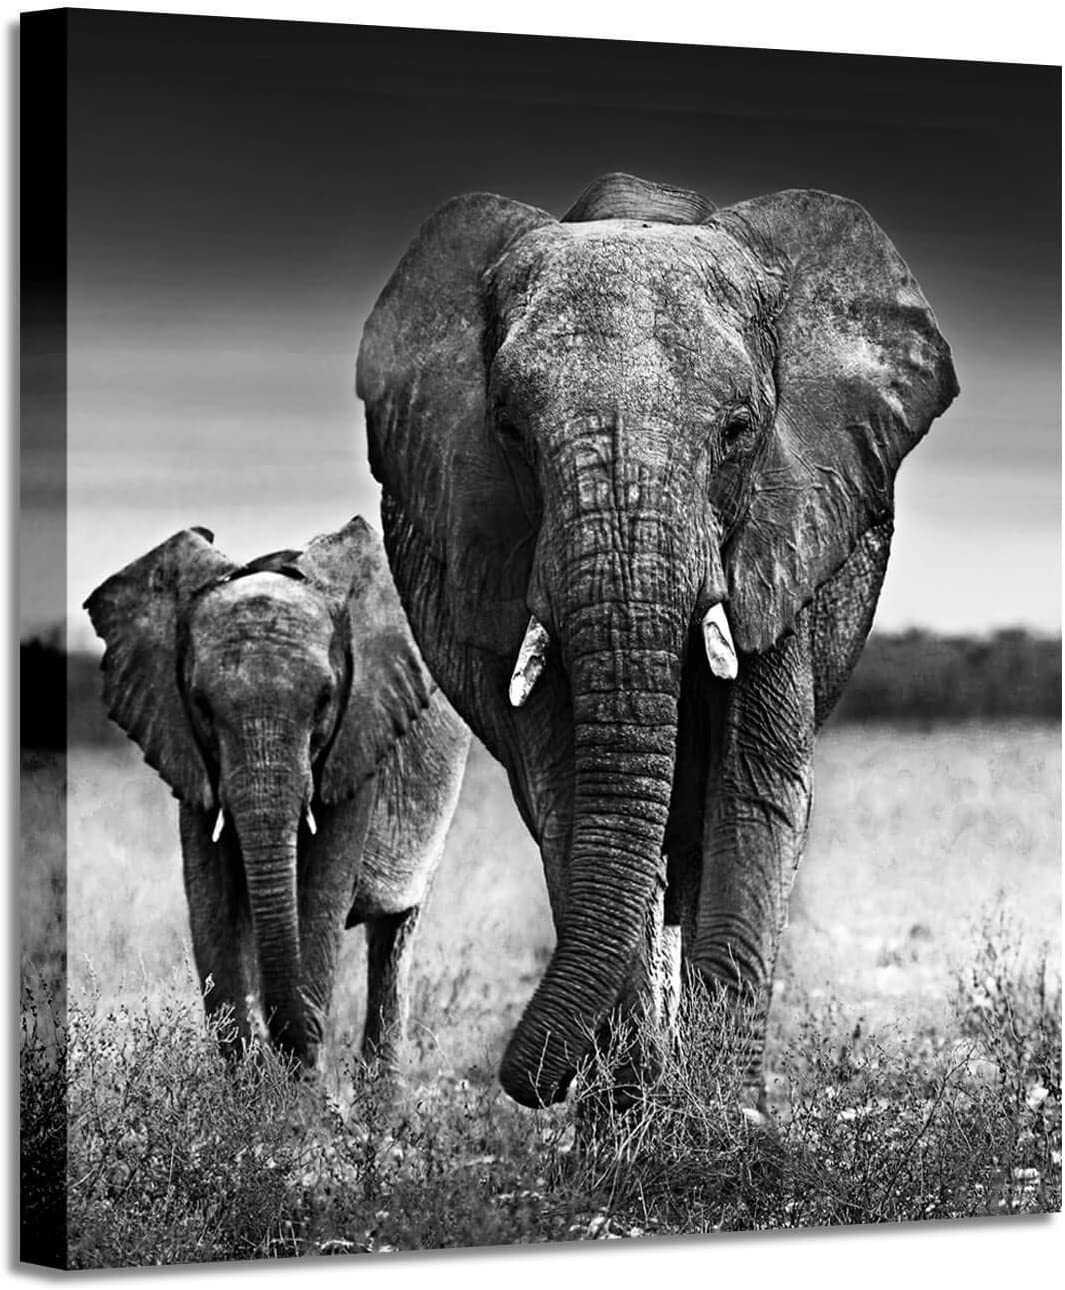 Wall Art Painting Wildlife Picture: Love of The Elephant Mama and Baby Print on Canvas for Bedroom (24''x24''x1panel)